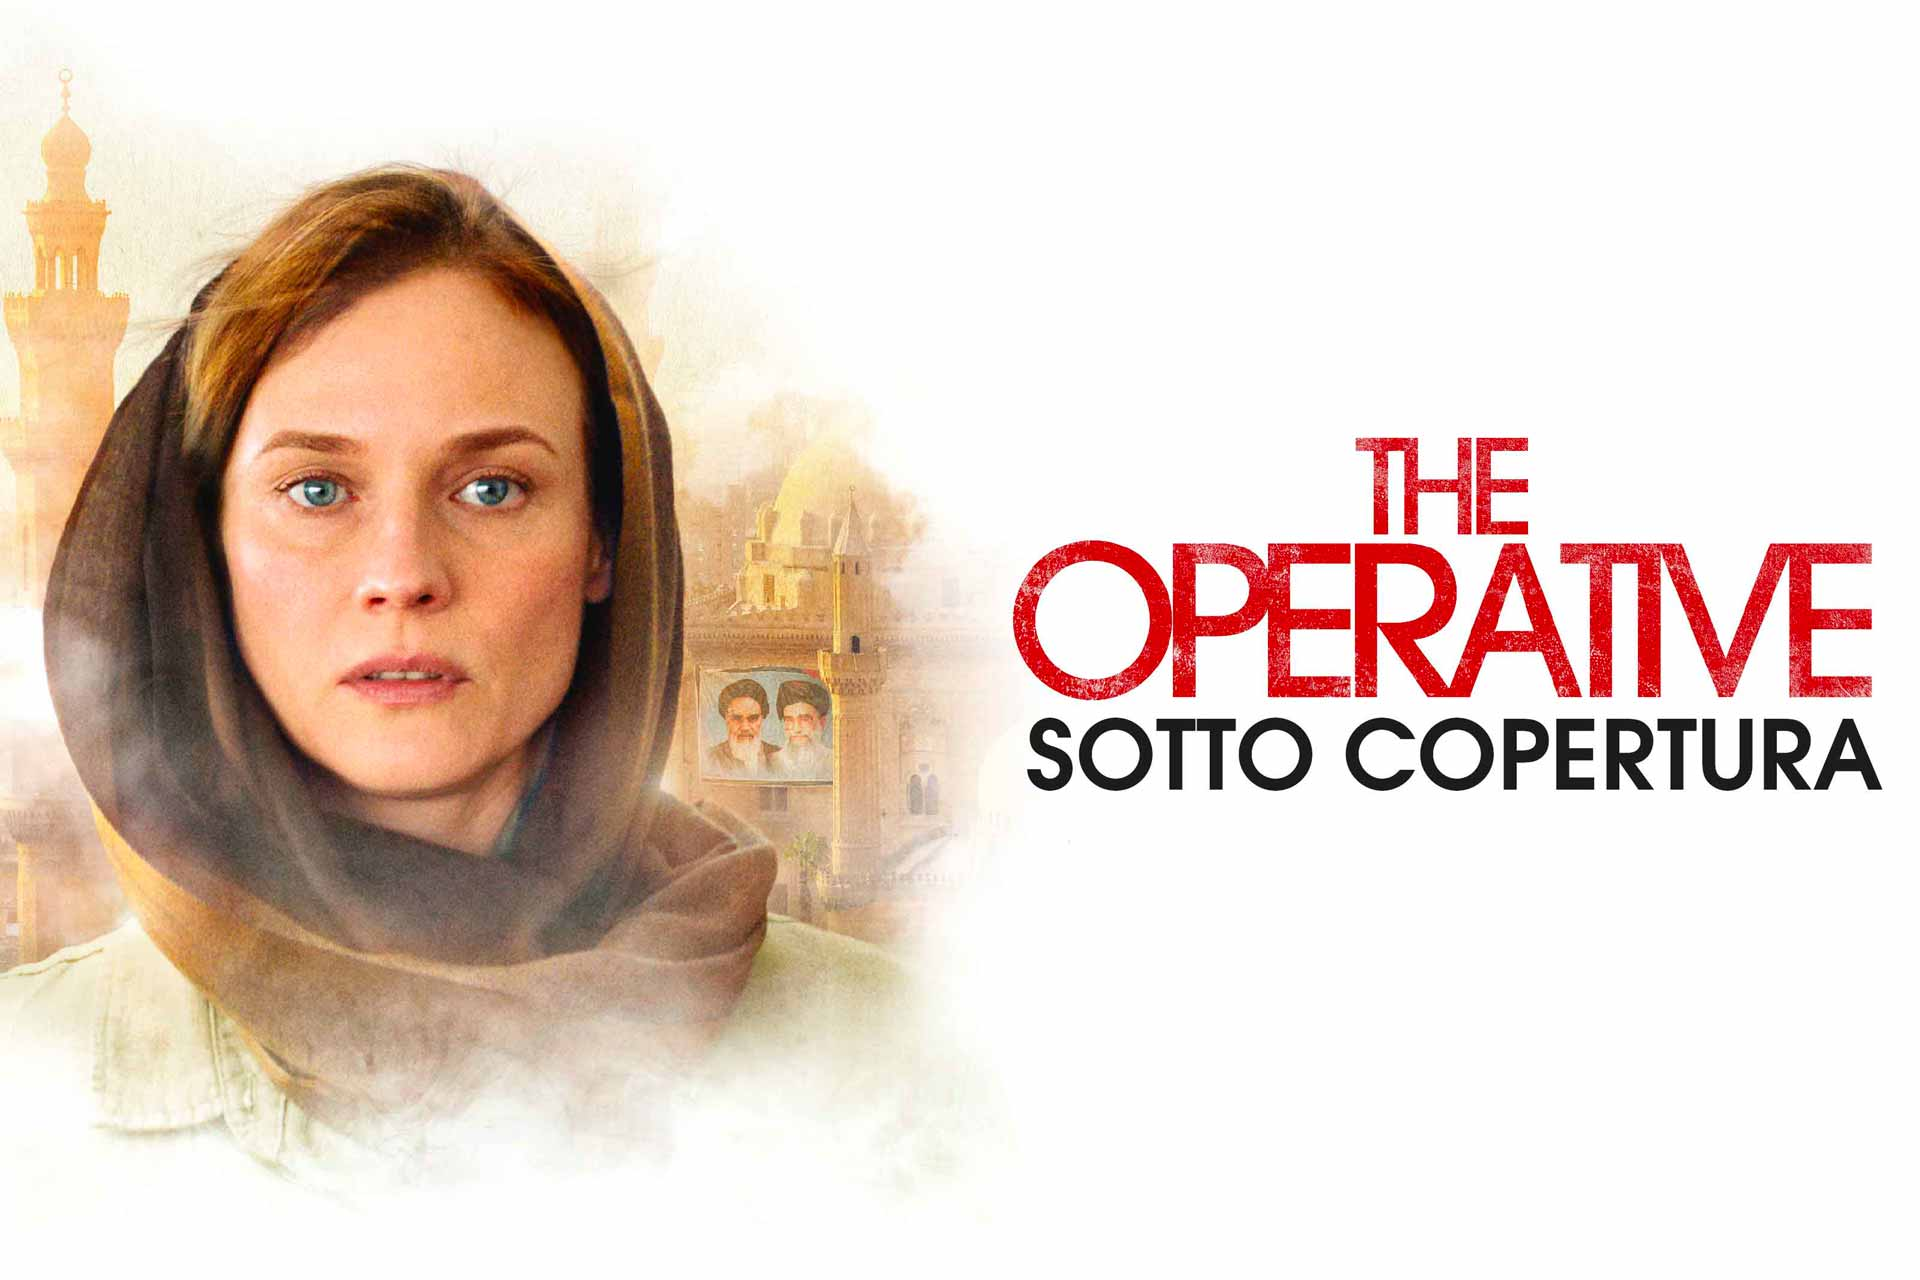 Diane Kruger in The Operative - Sotto Copertura